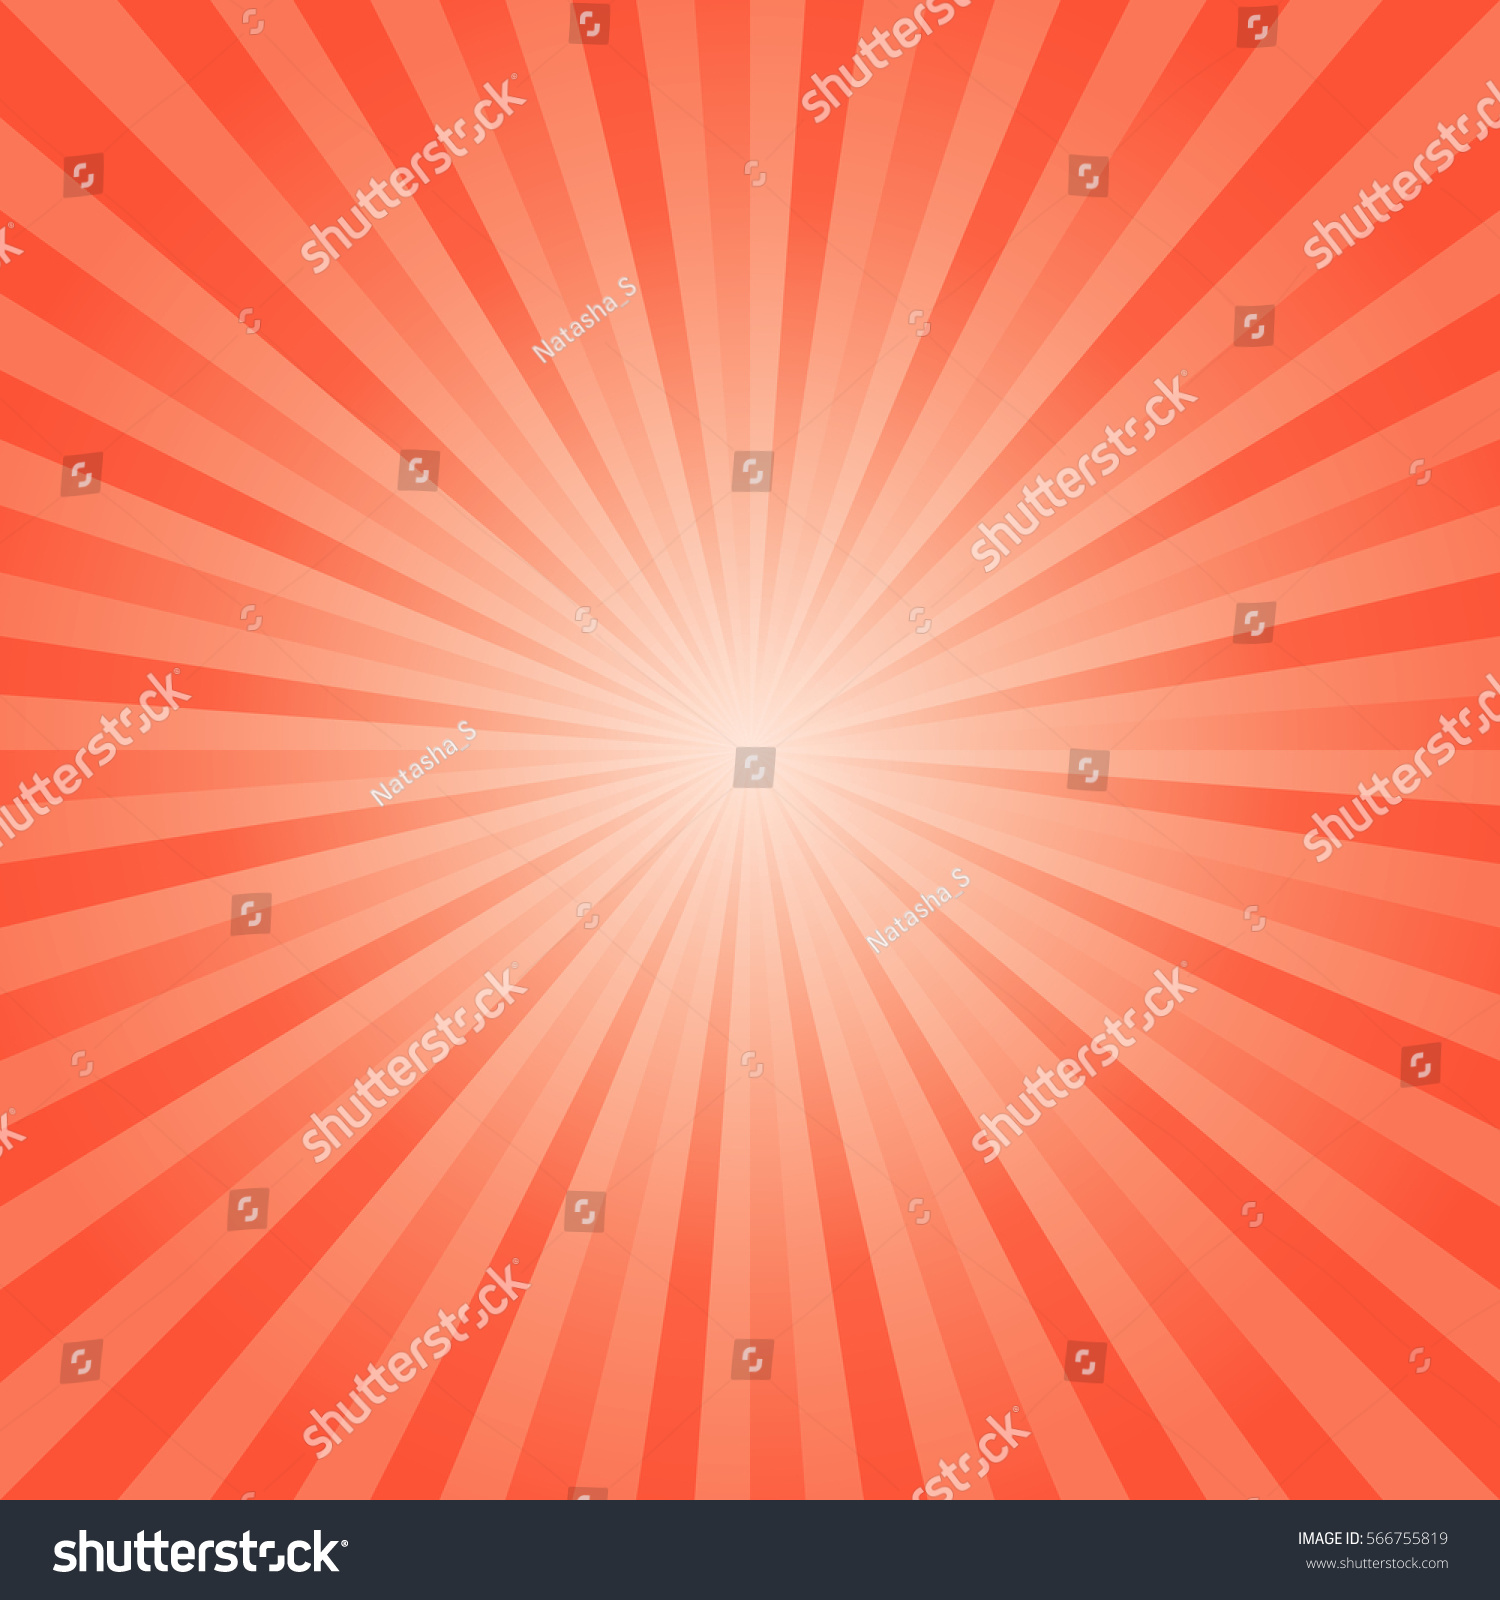 Abstract Bright Orange Technology Background Stock Vector - Image ...